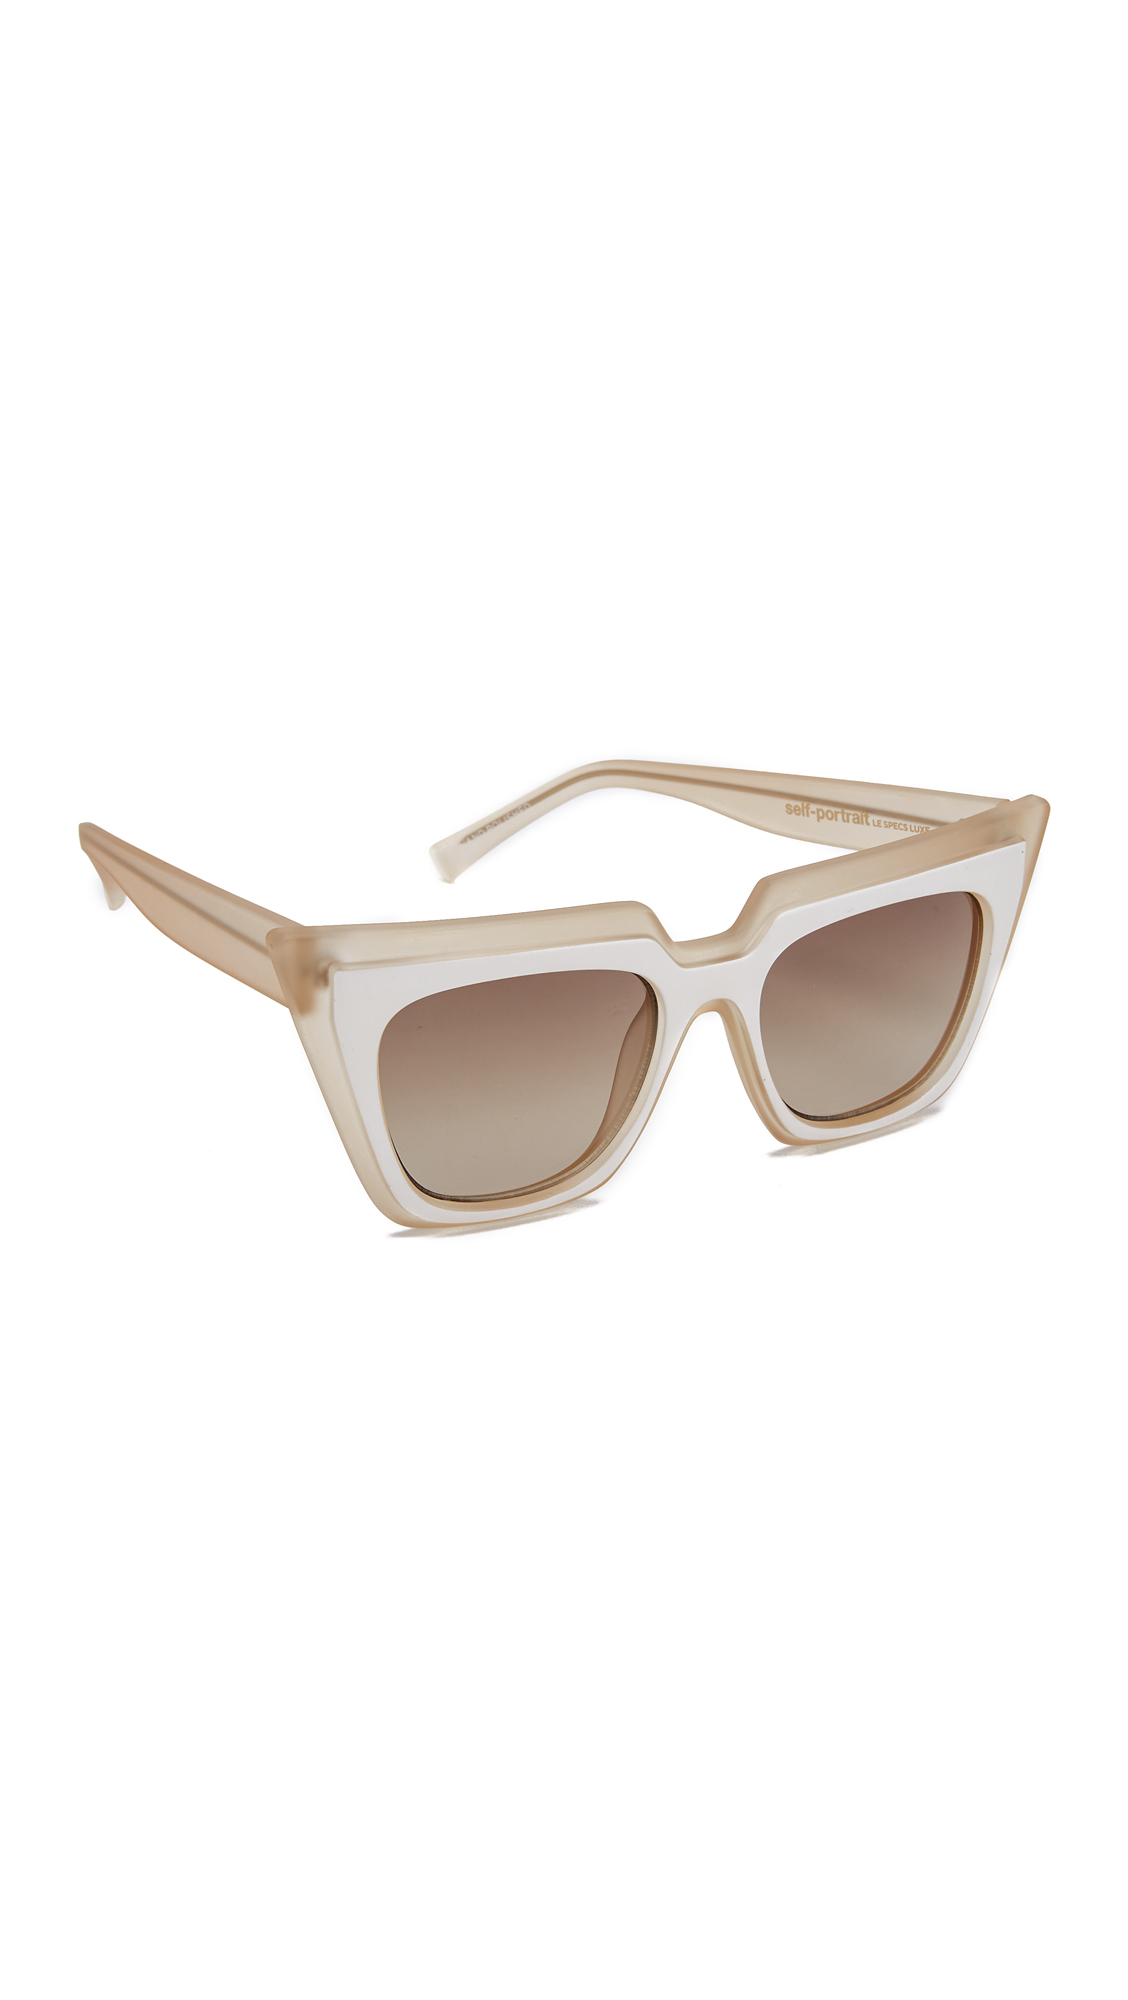 A collaboration between Self Portrait and Le Specs. The dramatic cat eye frames of these Self Portrait sunglasses create a bold stylish look. Frosted frames and matte overlay. Gradient lenses. Case and drawstring bag included. Cateye